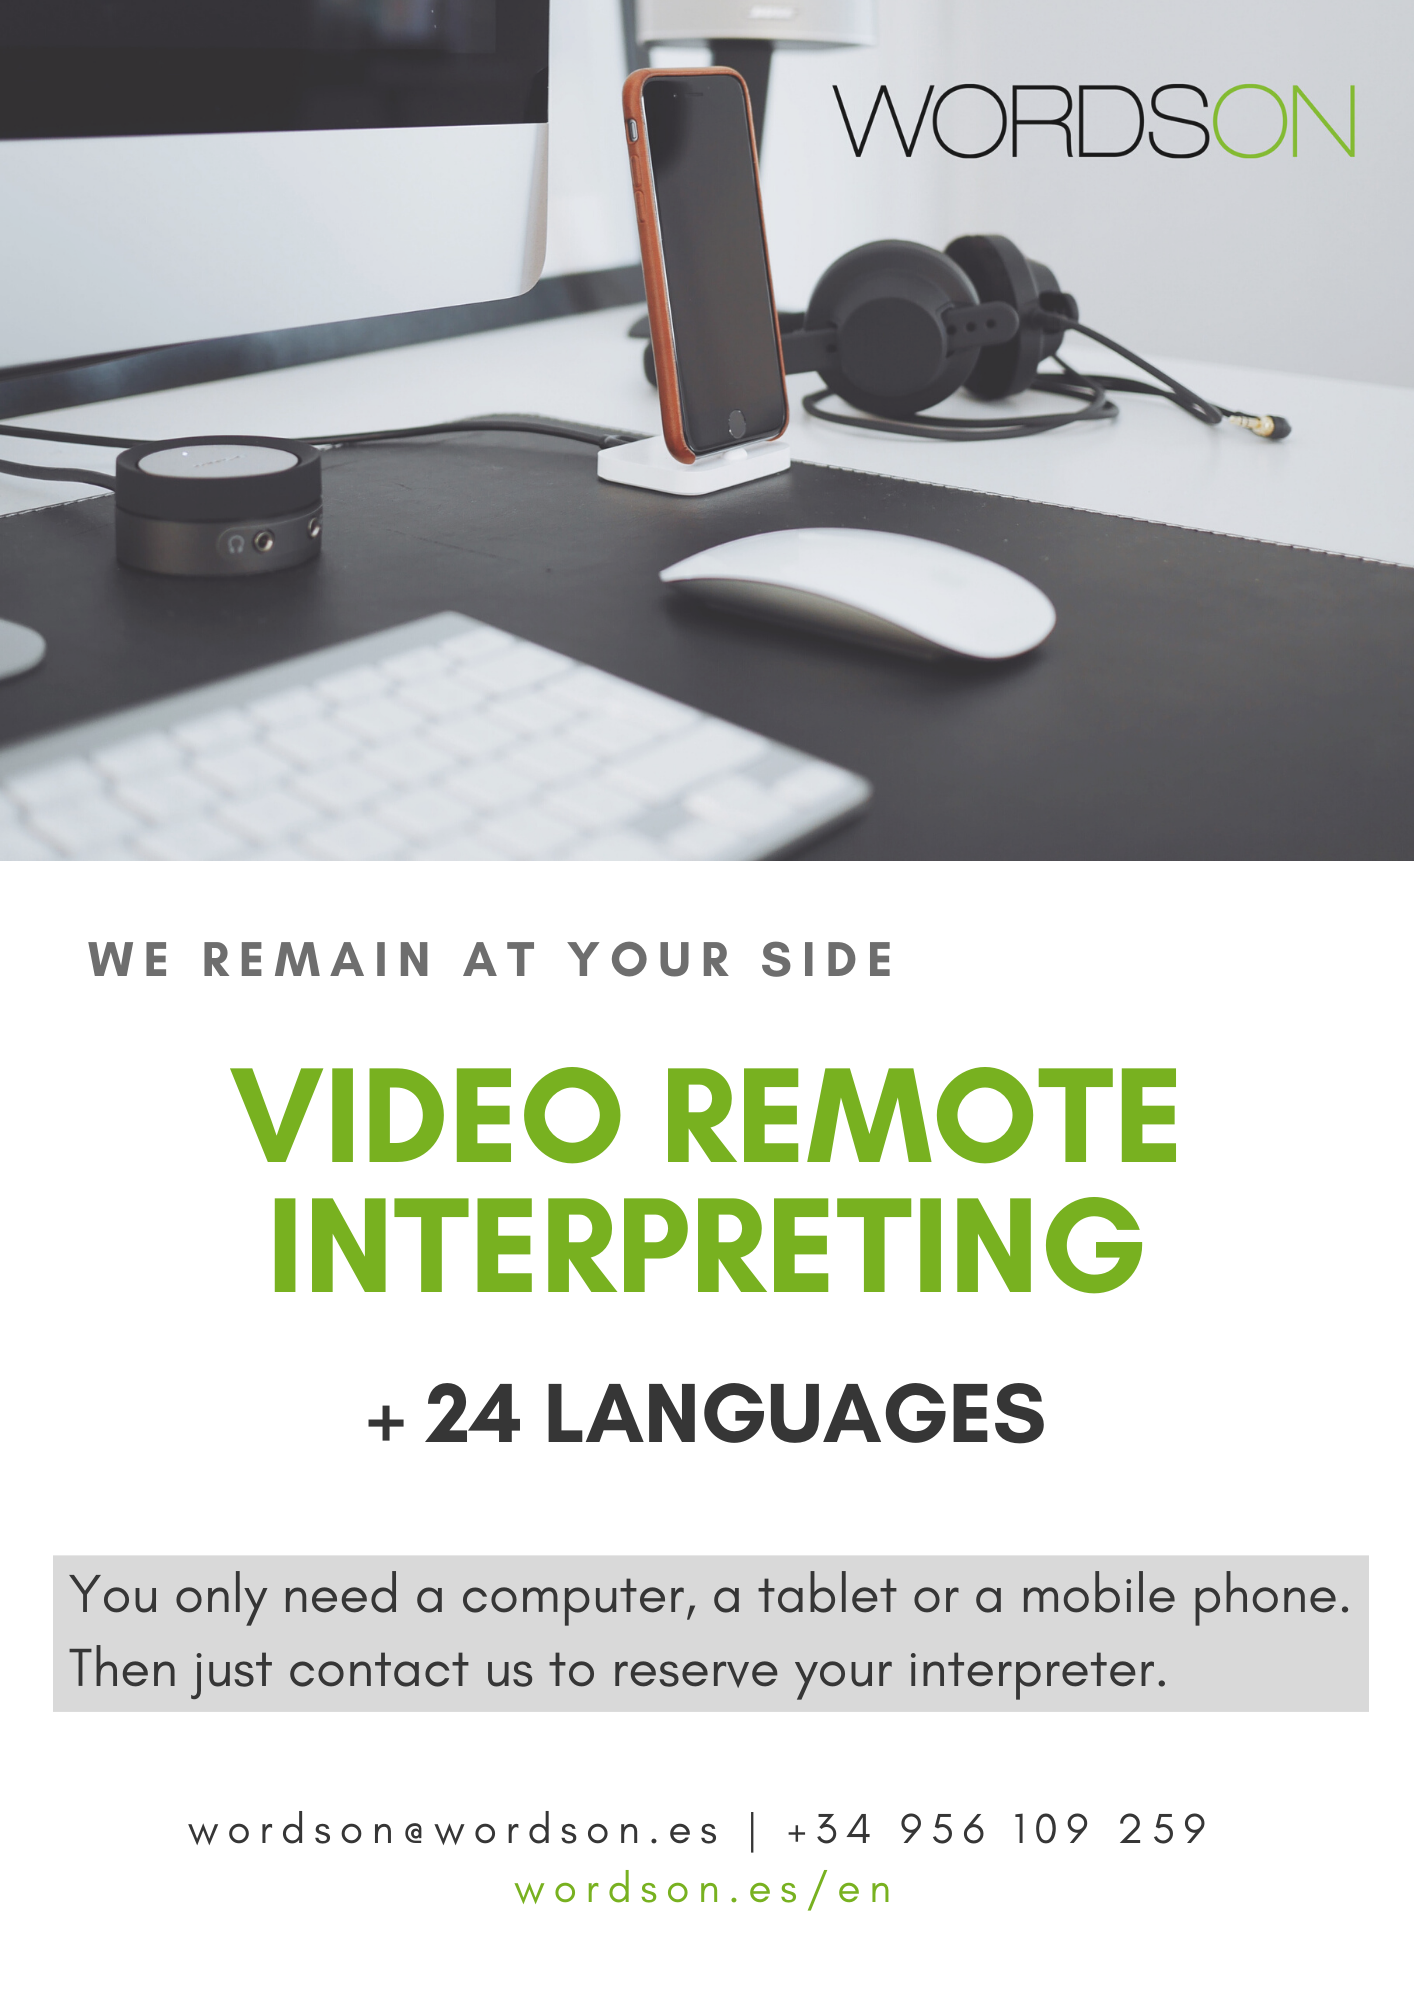 Video remote interpreting services